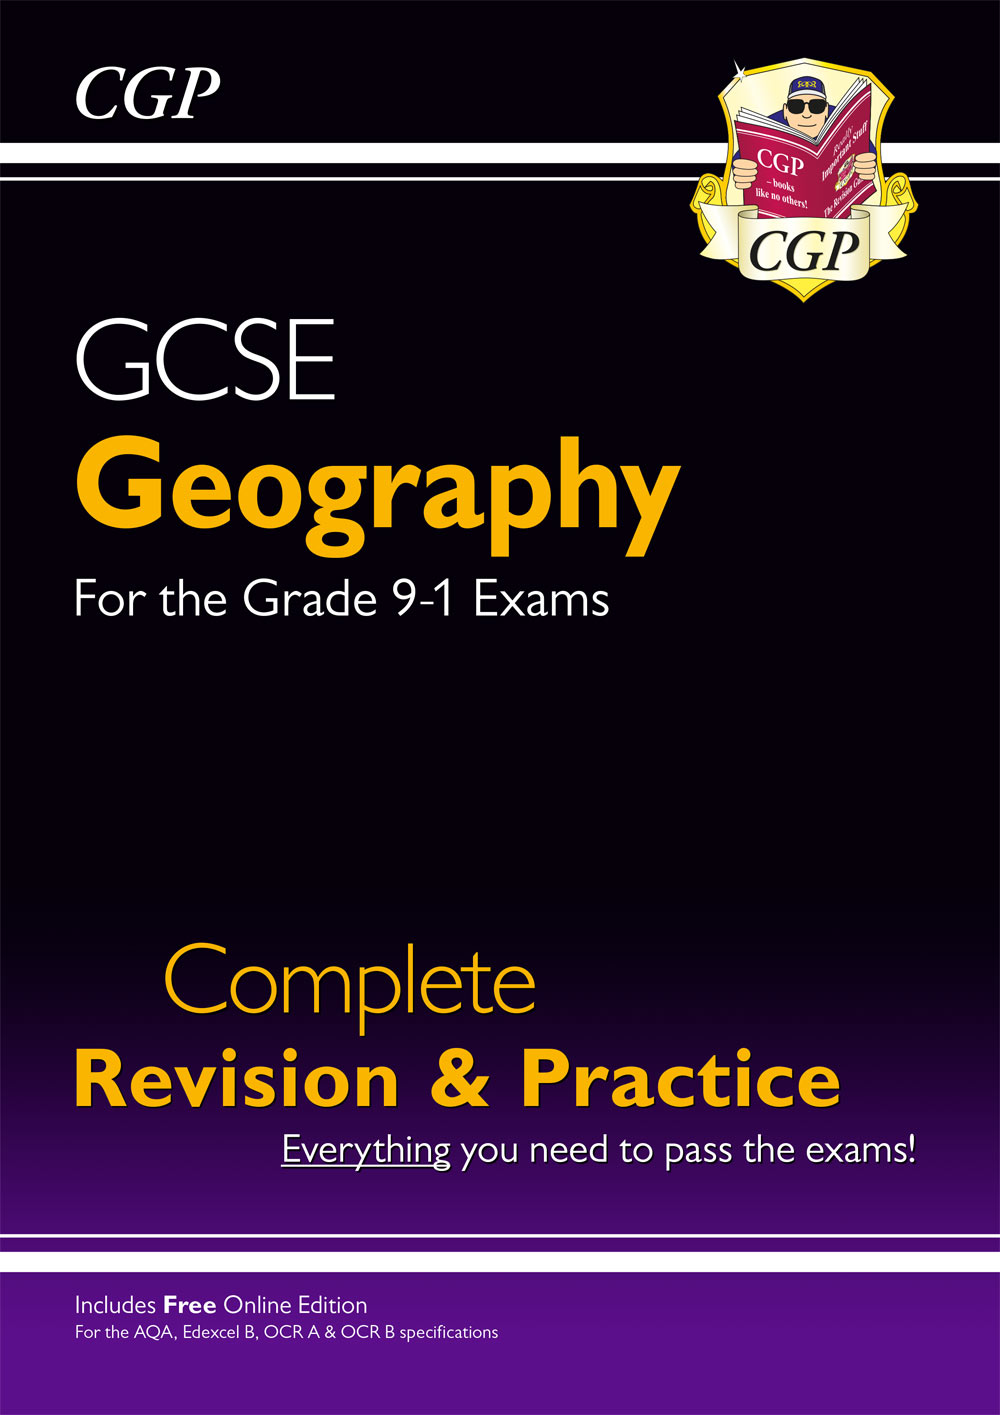 GHS44 - Grade 9-1 GCSE Geography Complete Revision & Practice (with Online Edition)